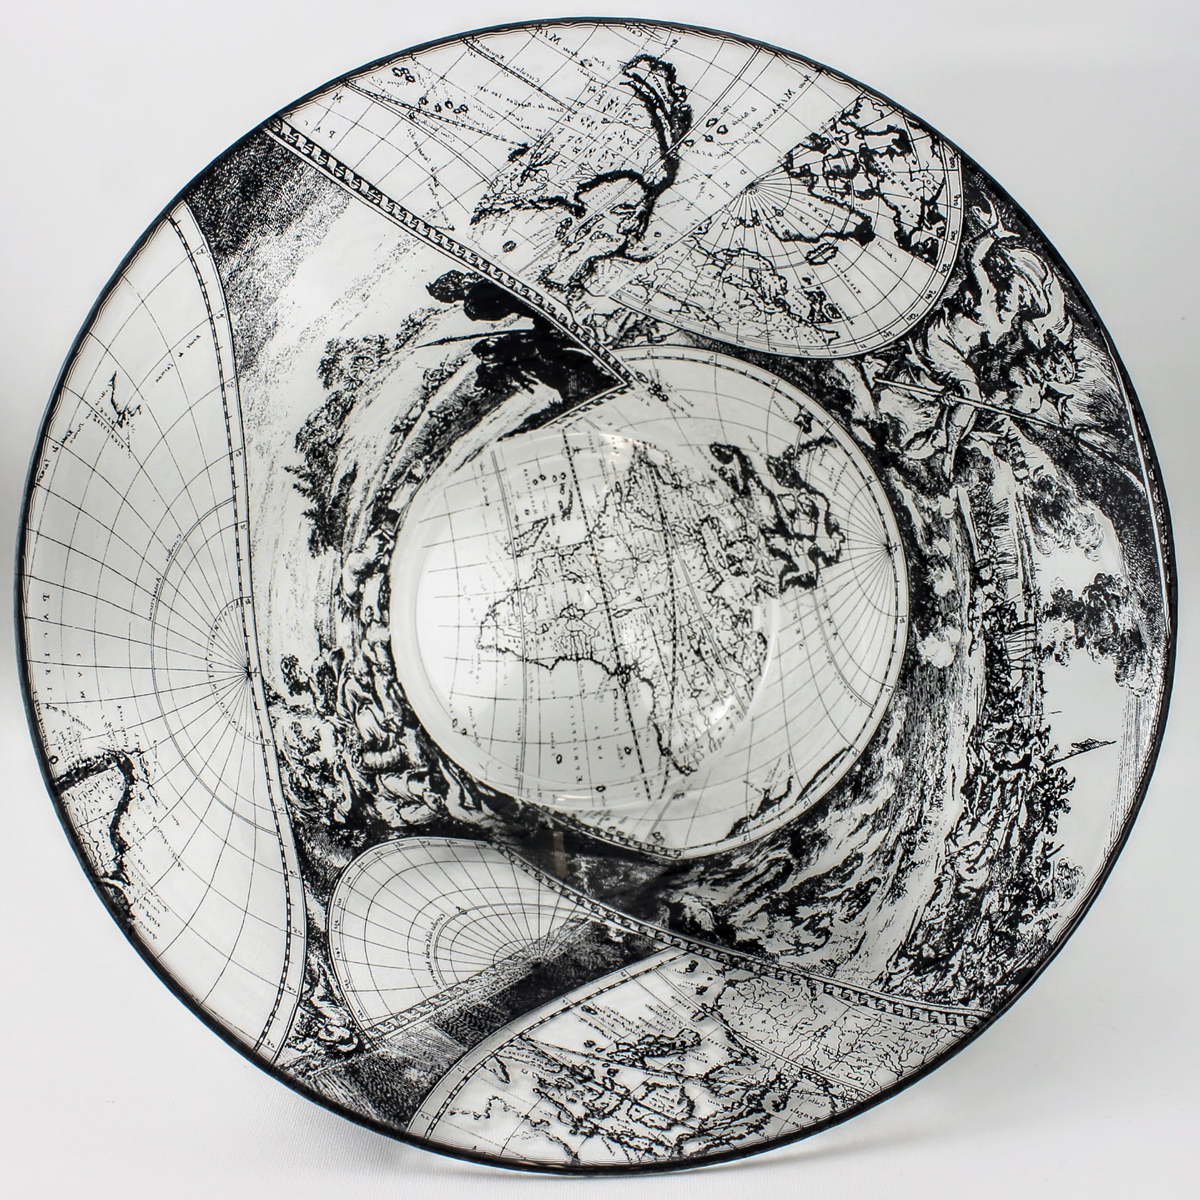 Large glass bowl features scenes from a antique Dutch world map